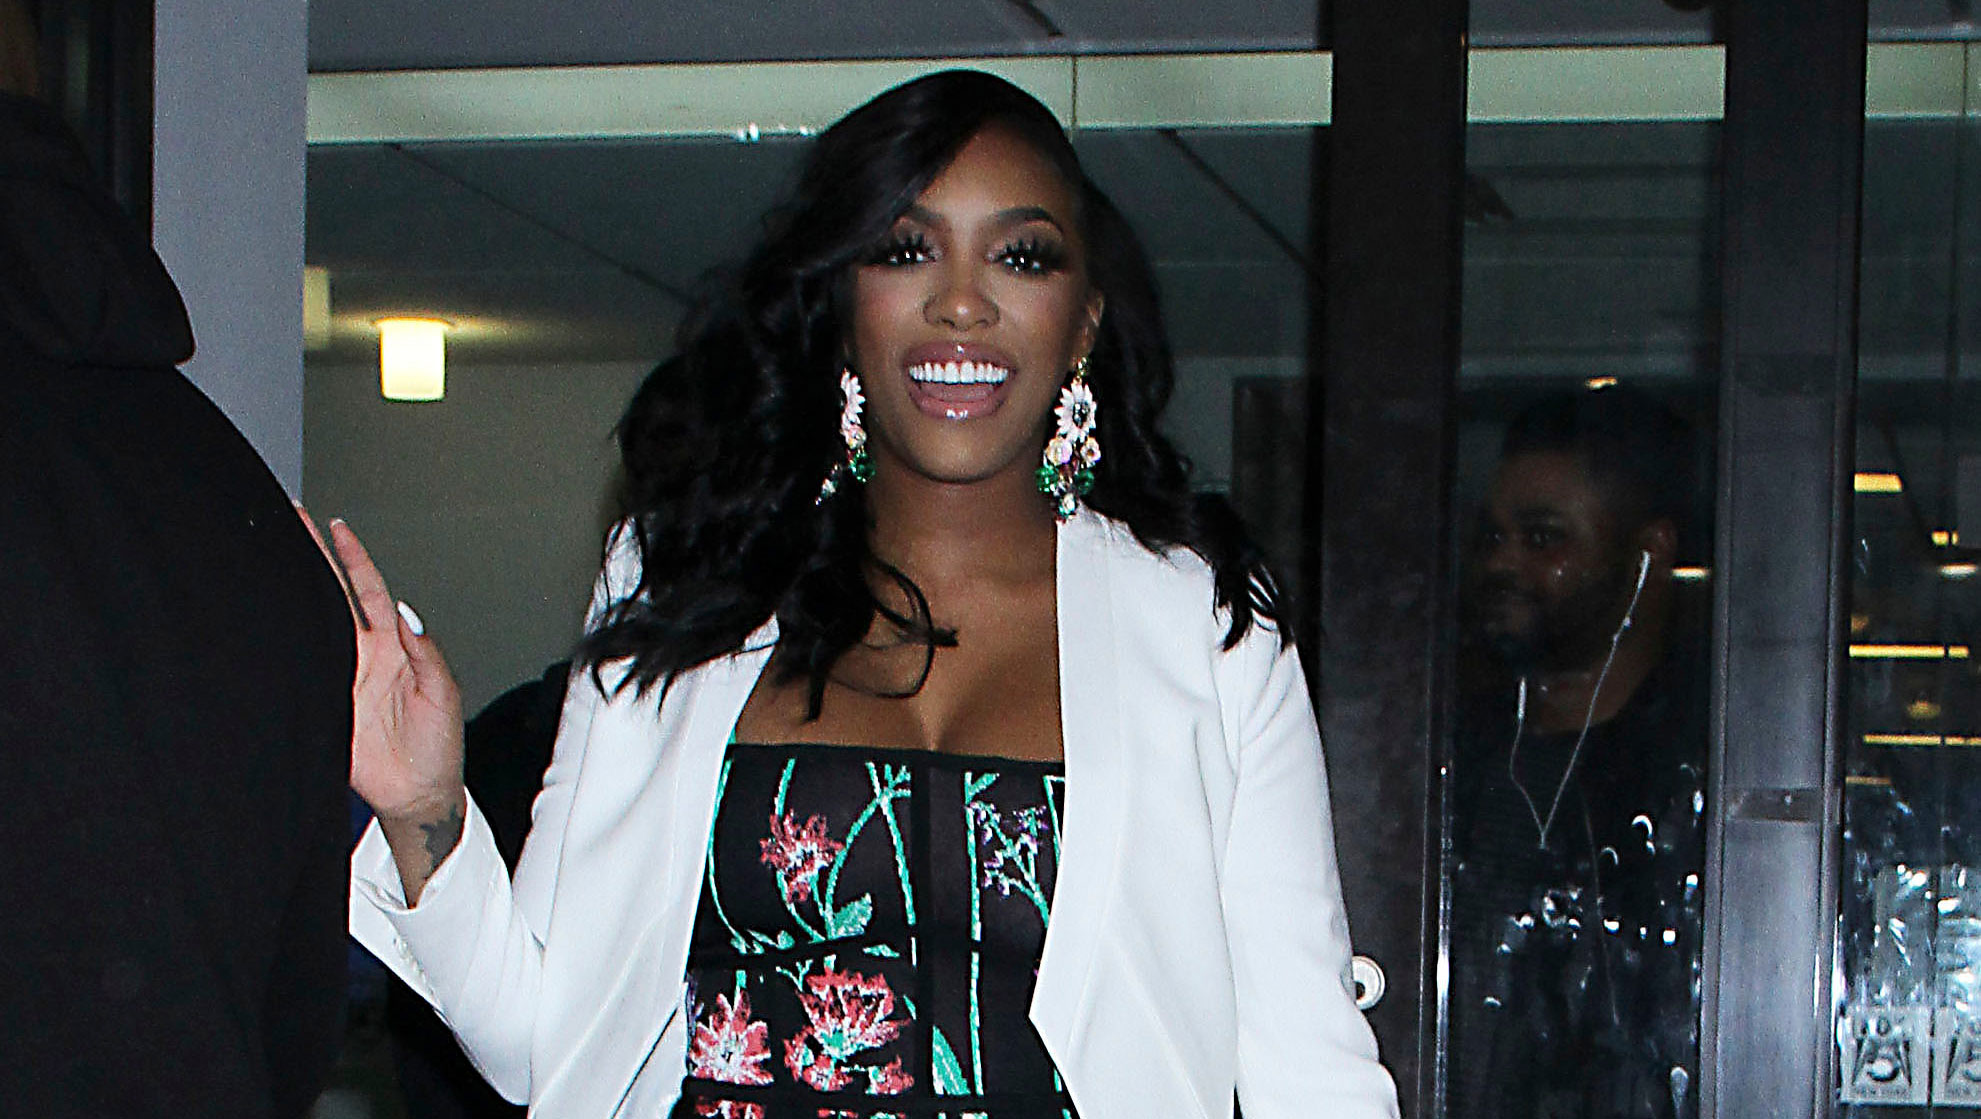 Porsha Williams Has Just Showed Fans Her Favorite Dress That She Could Wear Before And During Pregnancy As Well